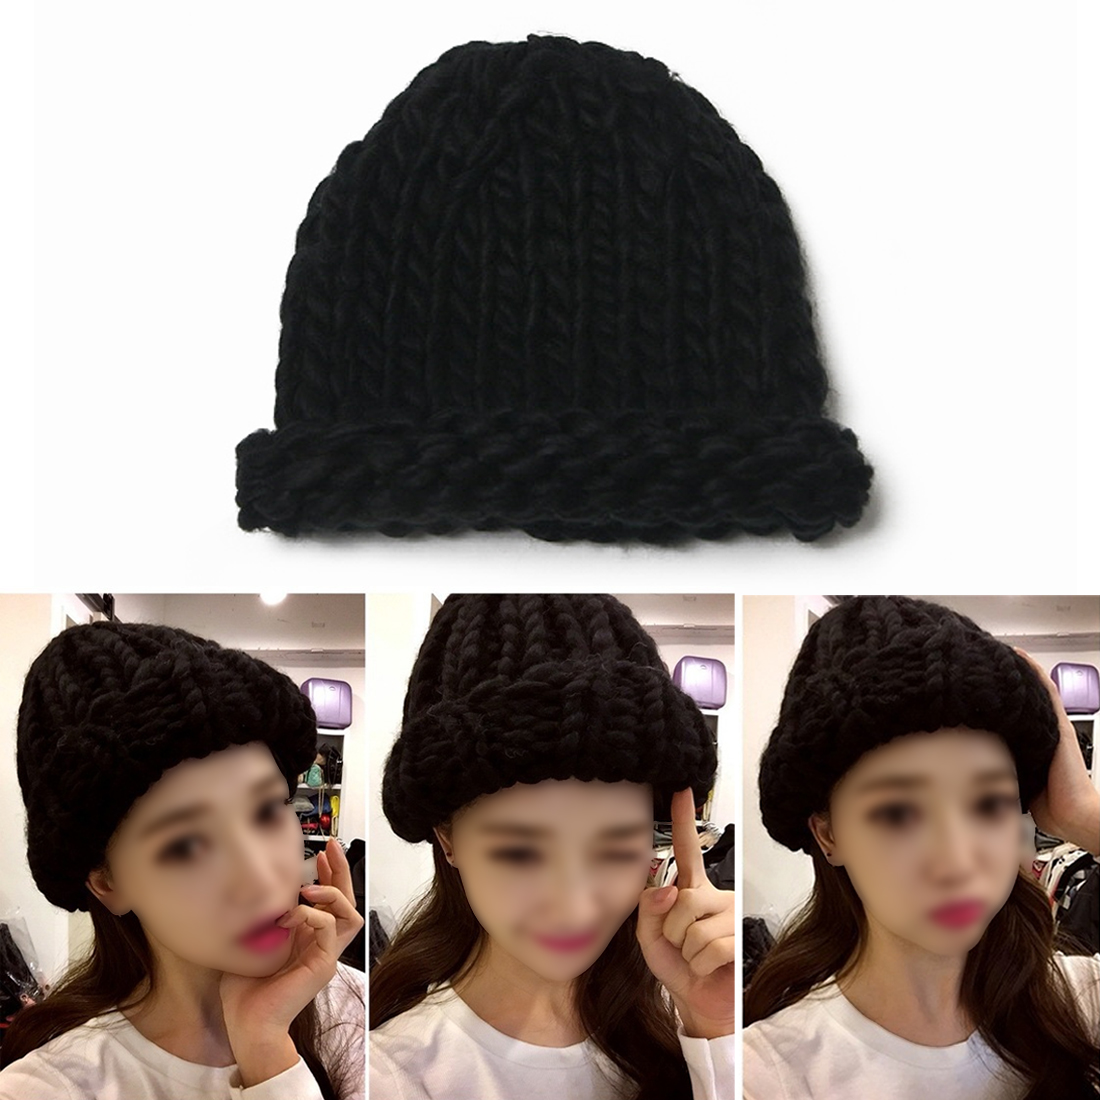 New Women Winter Warm Hat Handmade Knitted Coarse Lines Cable Hats Knit Cap Beanie Crochet Caps Women Accessories new 2016 winter hat for women bonnets knitted wool caps shag line warm hat multicolor coarse lines skullies beanie hat wh007 a m